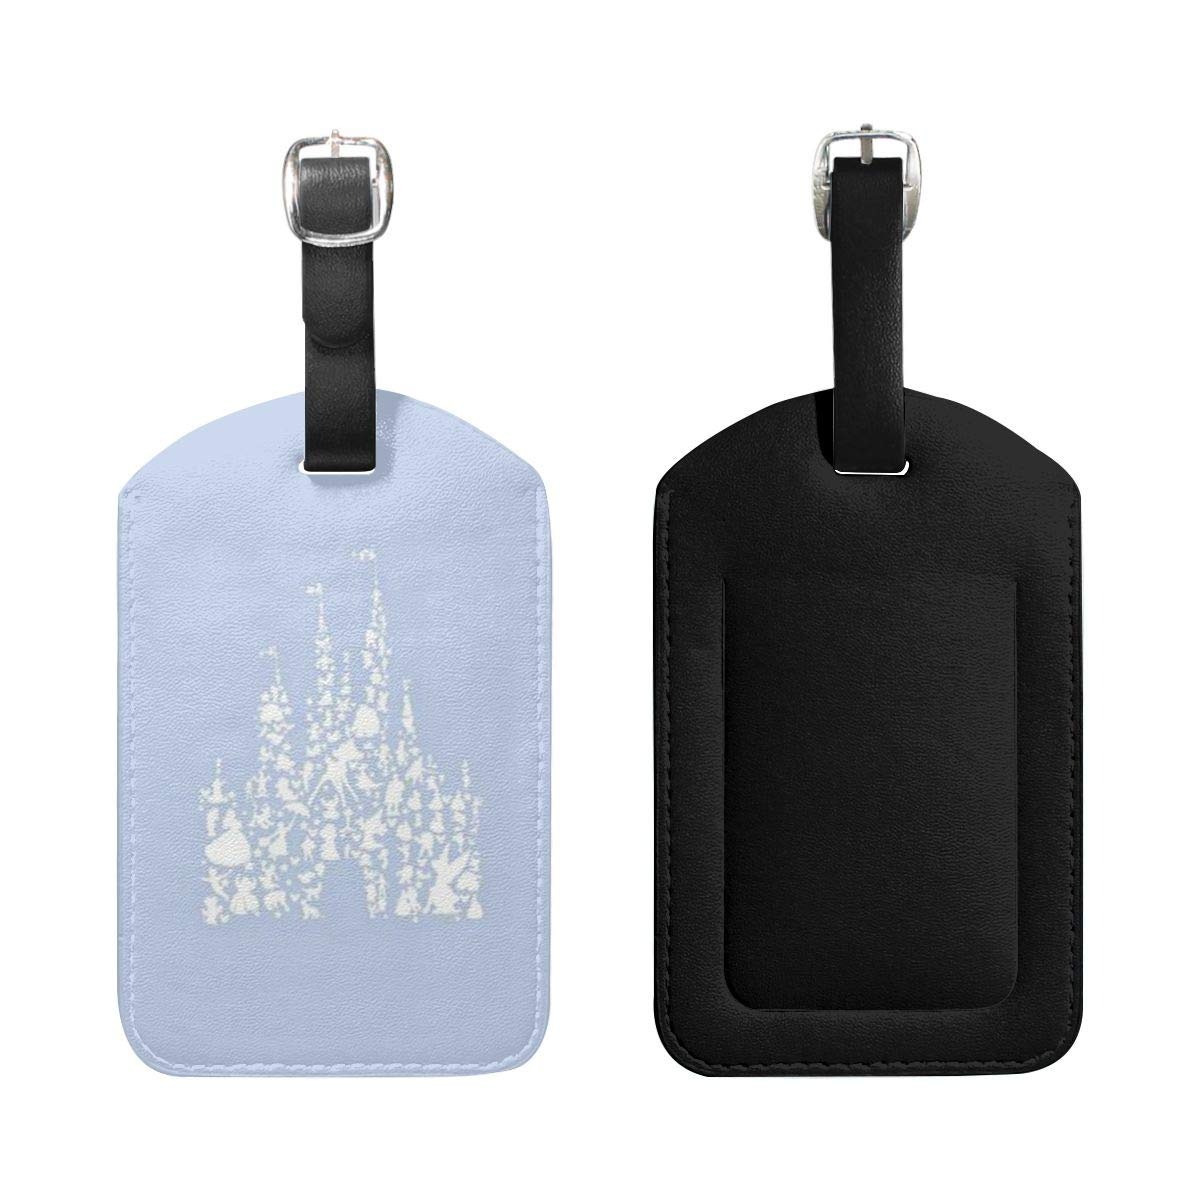 PU Leather Luggage Tags Castle Suitcase Labels Bag Adjustable Leather Strap Travel Accessories Set of 2